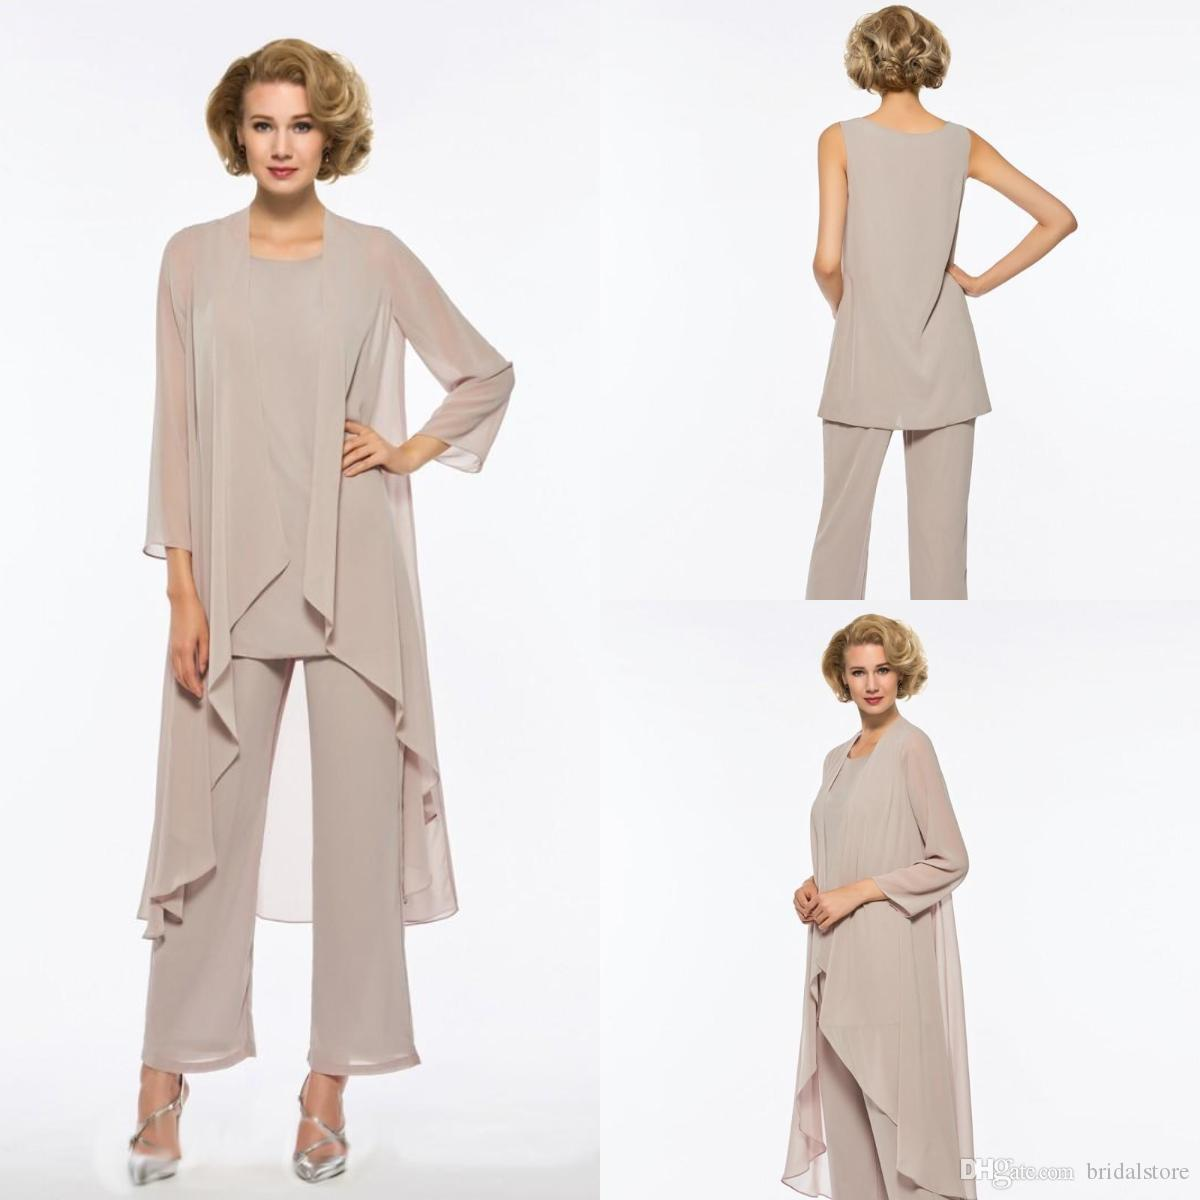 92ca99a3d04a Chic Stylish Mother Of The Bride Pant Suits Elegant Chiffon Beach Wedding  Mother Of Bride Dresses Outfits With Jacket Pant 2018 J0an Rivers Joan Joan  Rivers ...